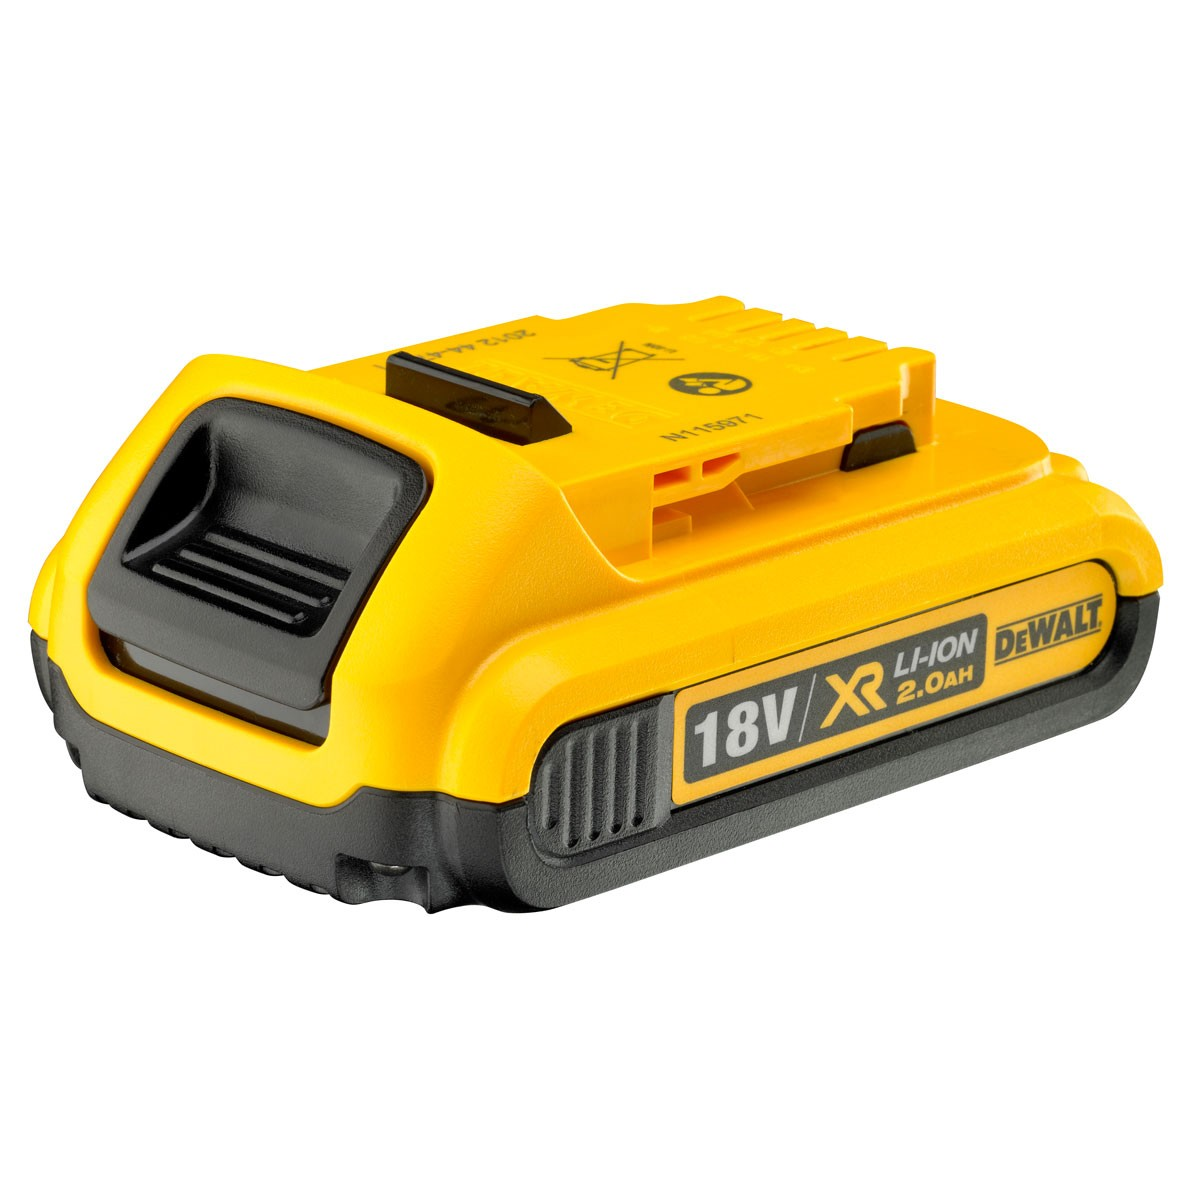 DeWalt DCB183 18v XR Slide 2.0Ah Li-Ion Battery